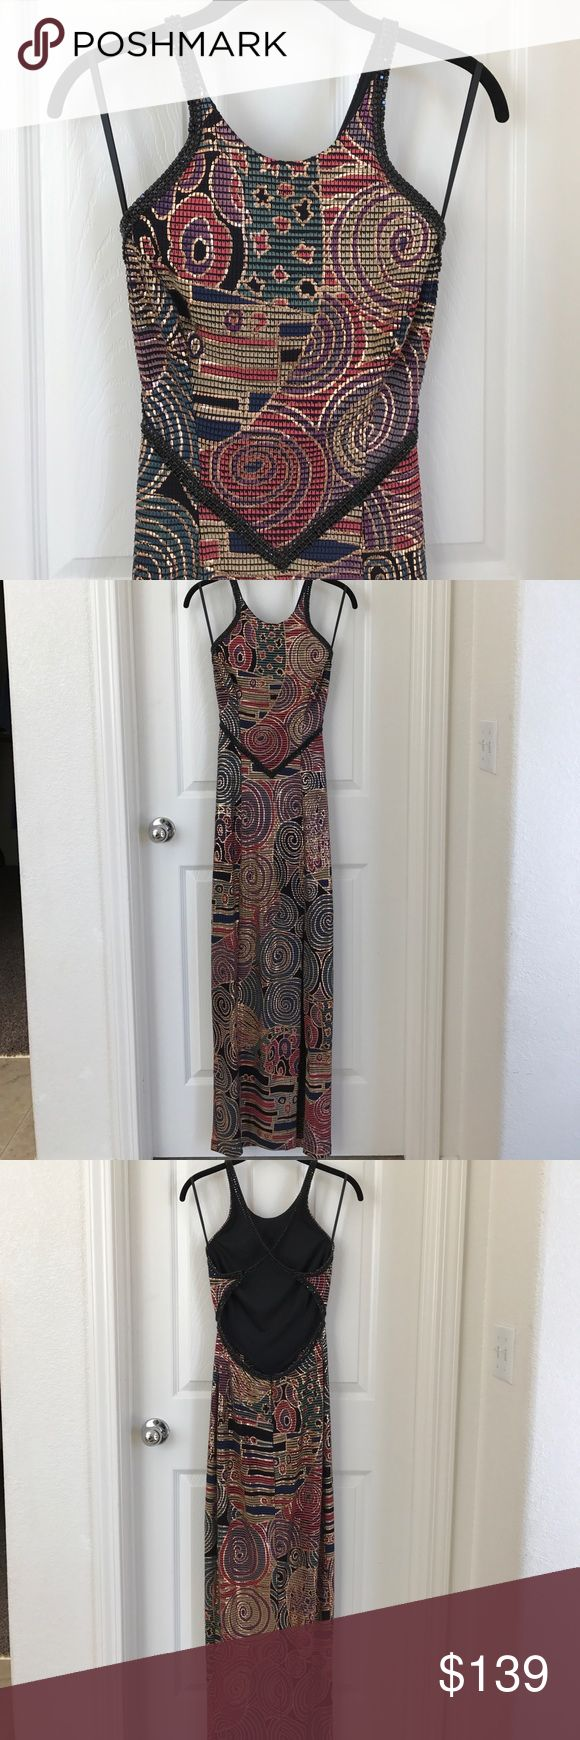 Vintage Janine Gown Vintage Janine evening gown. Fabric is print with gold metallic, and trimmed with black rhinestones. Front slit over the left knee. Label reads petite. Message for measurements. Excellent preowned condition. This dress is absolutely stunning. Janine Dresses Backless